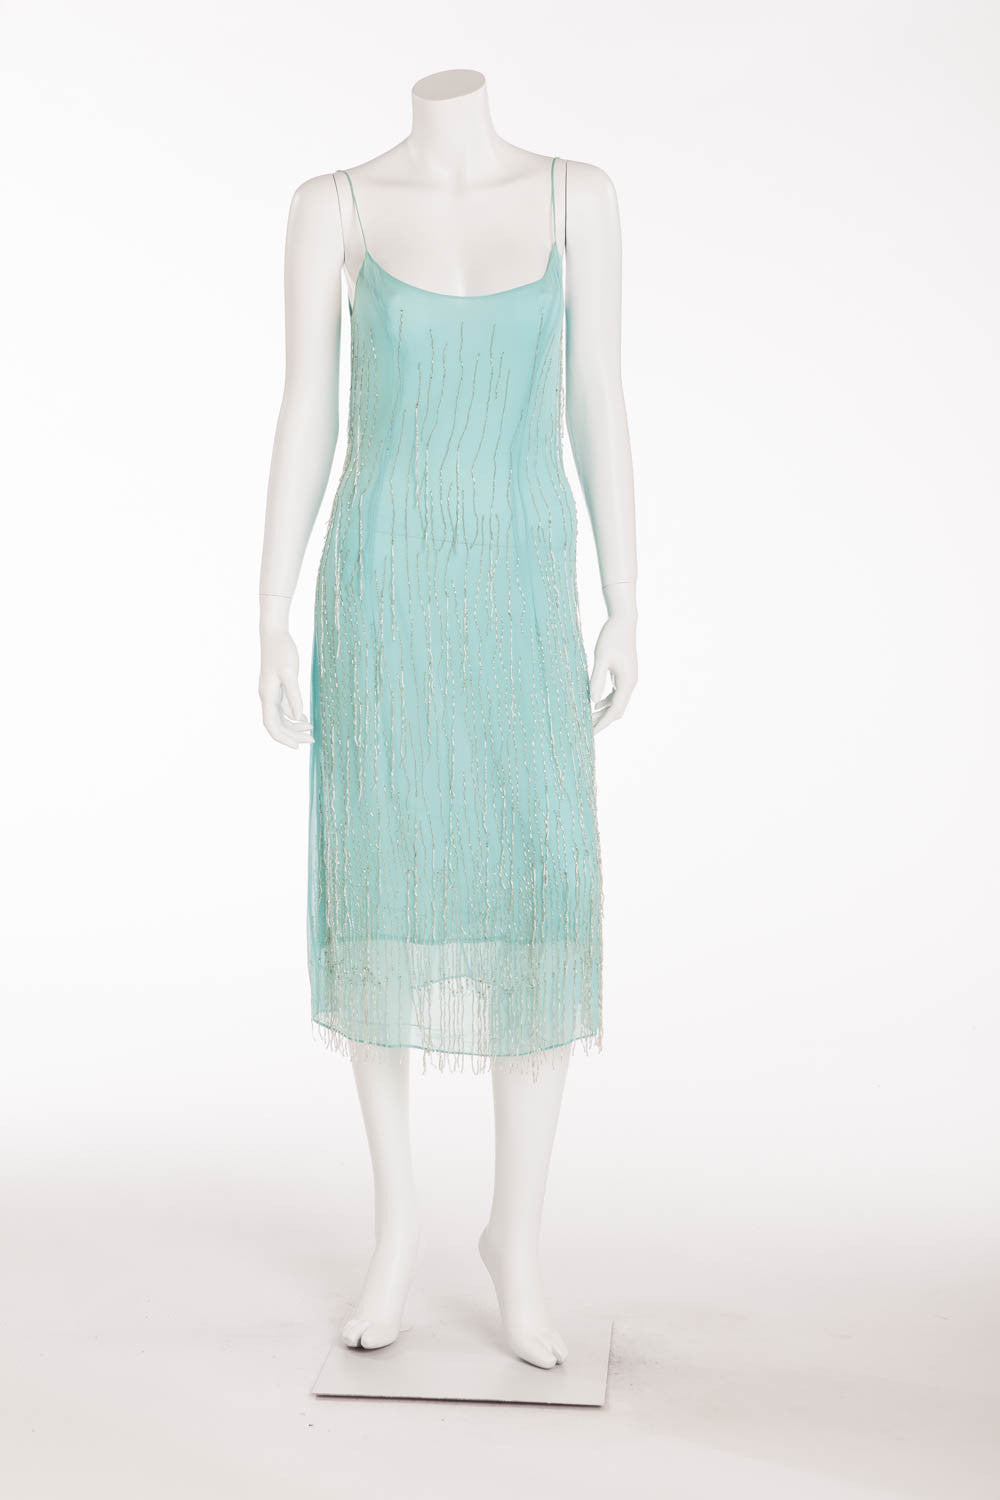 Blumarine - Spaghetti Strap Aqua Beaded Dress - IT 42